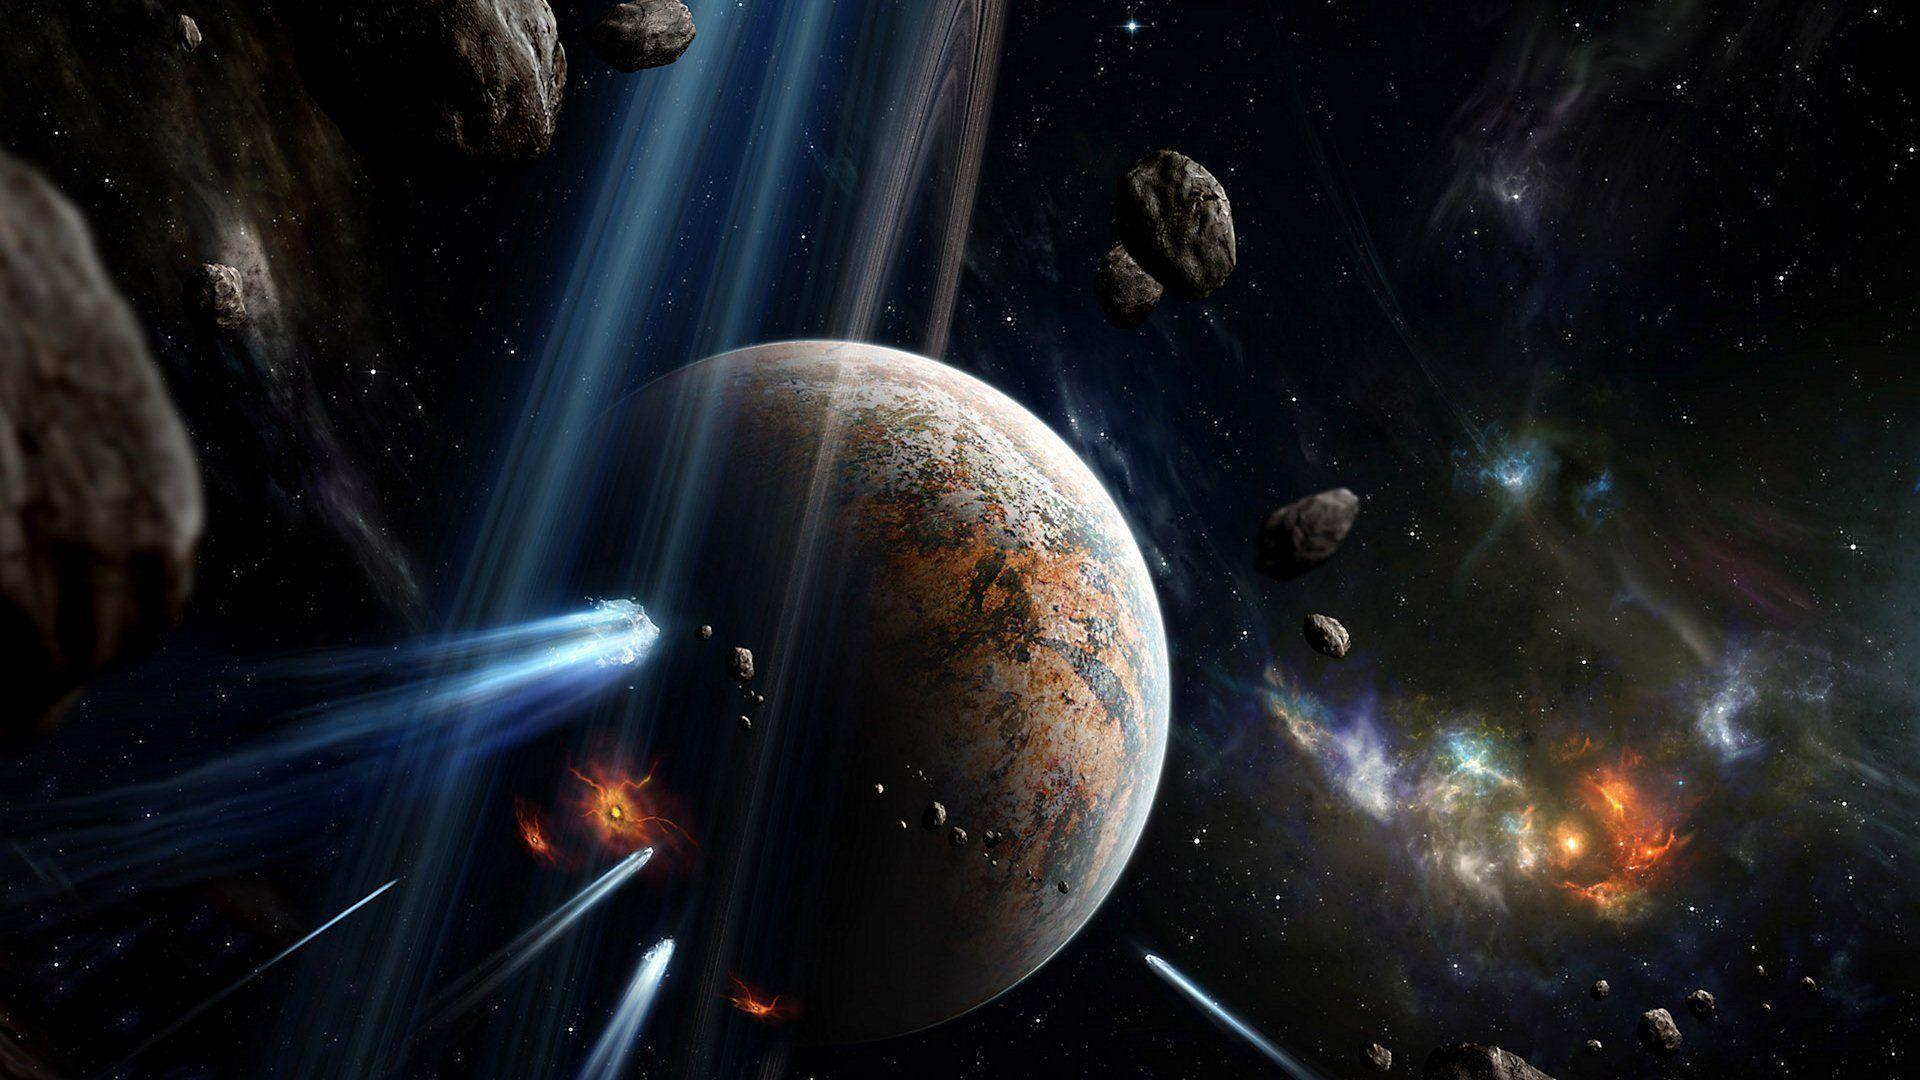 astronomy backgrounds wallpaper - photo #46